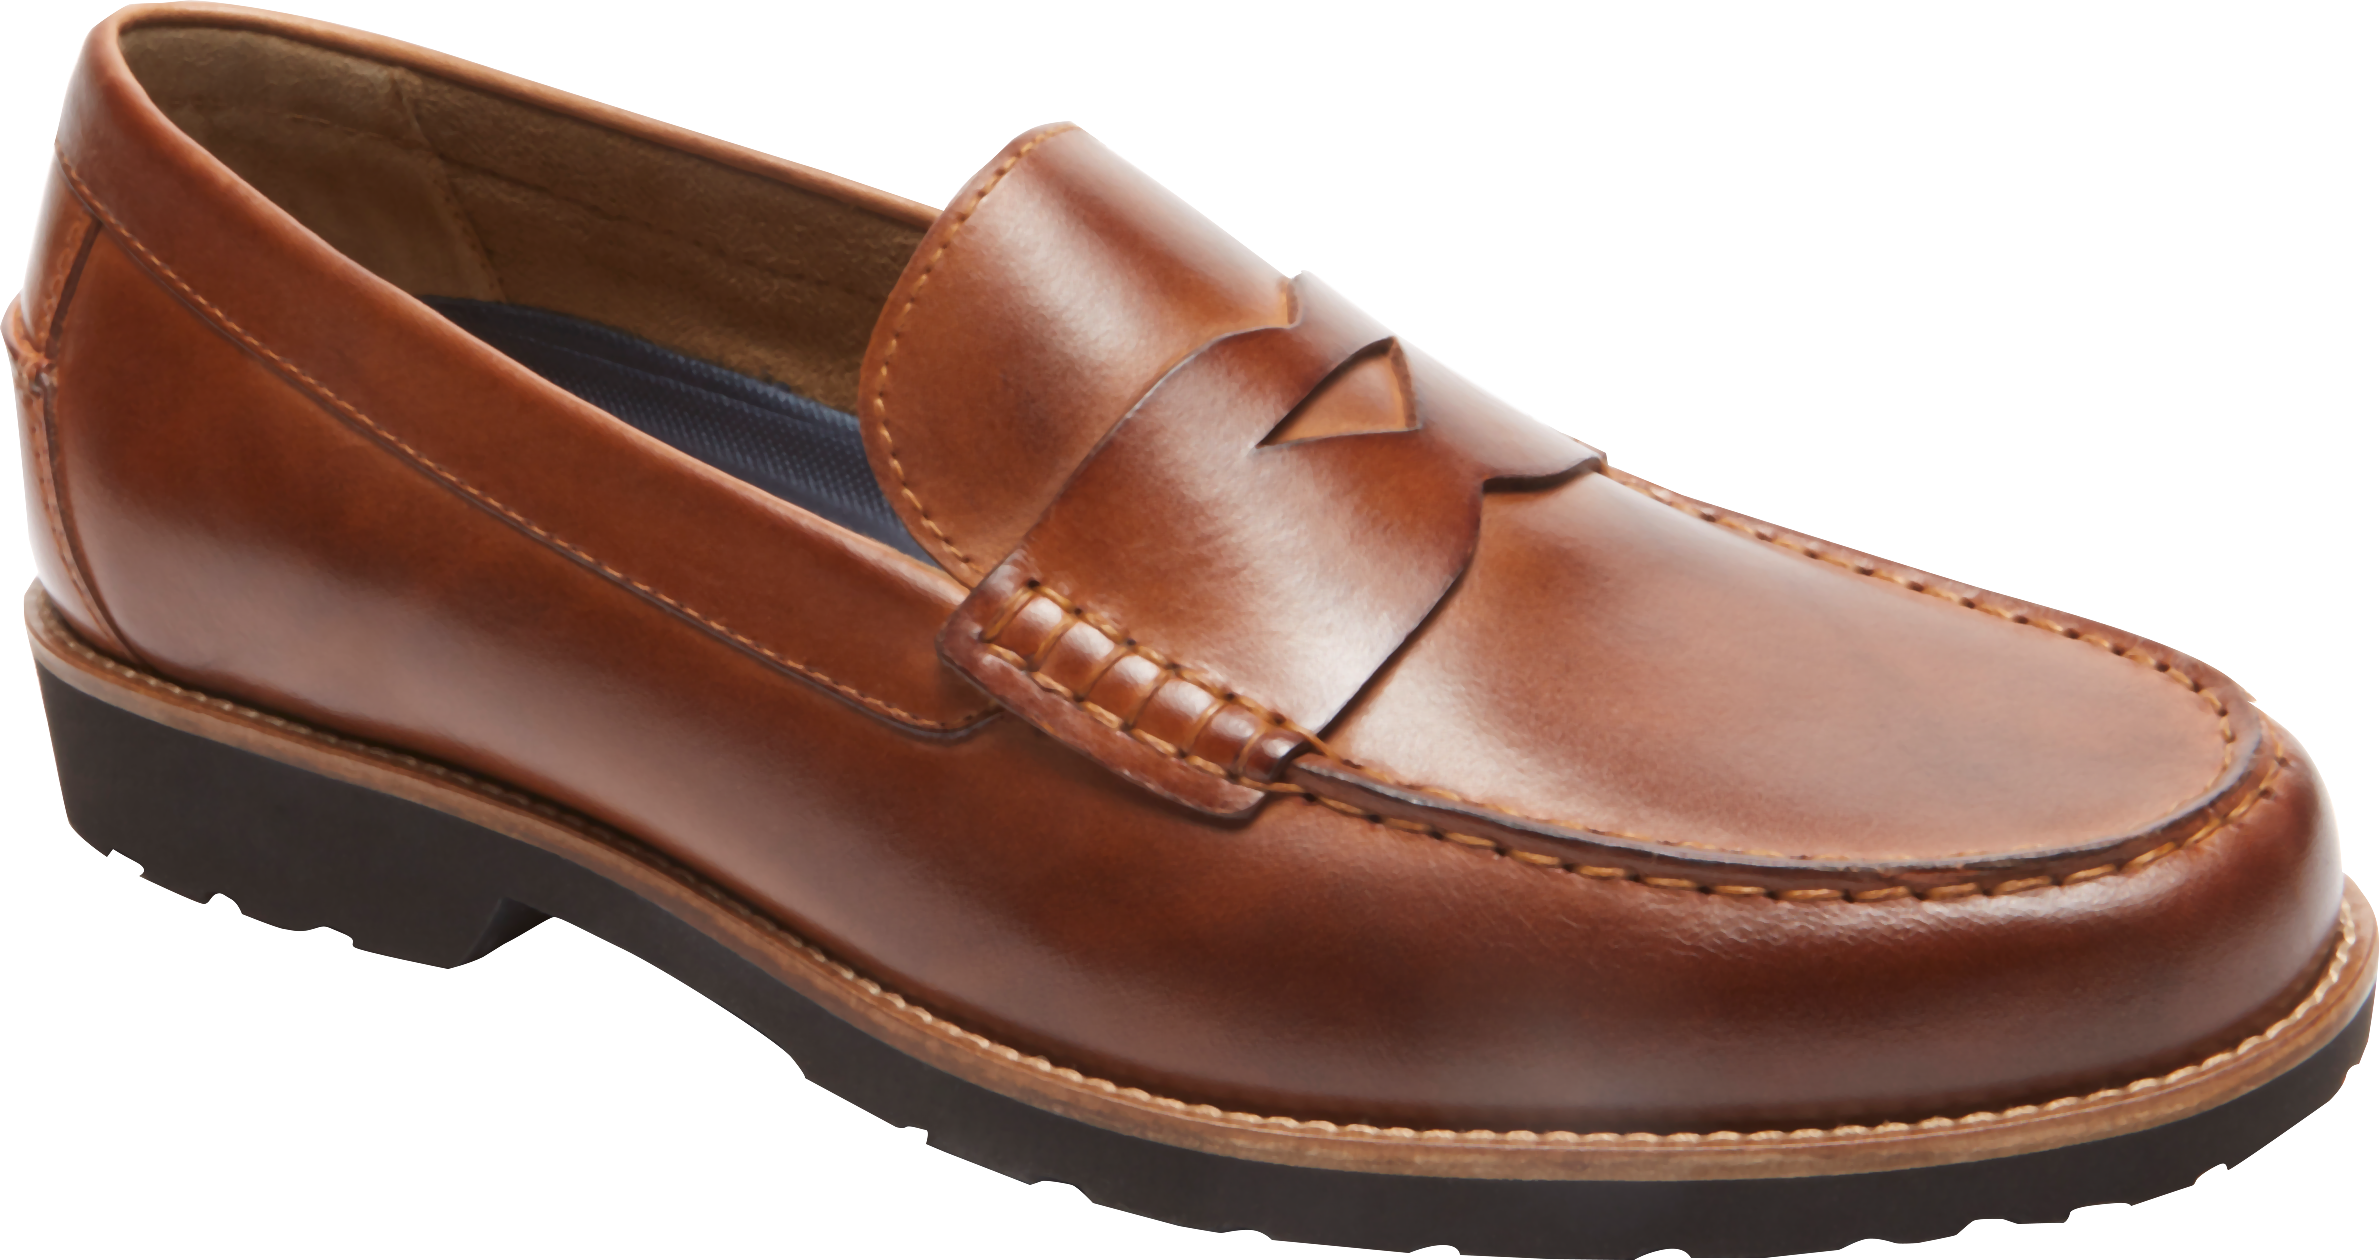 e82b6fdddf9 Rockport Style Seeker Penny Loafers - Rockport